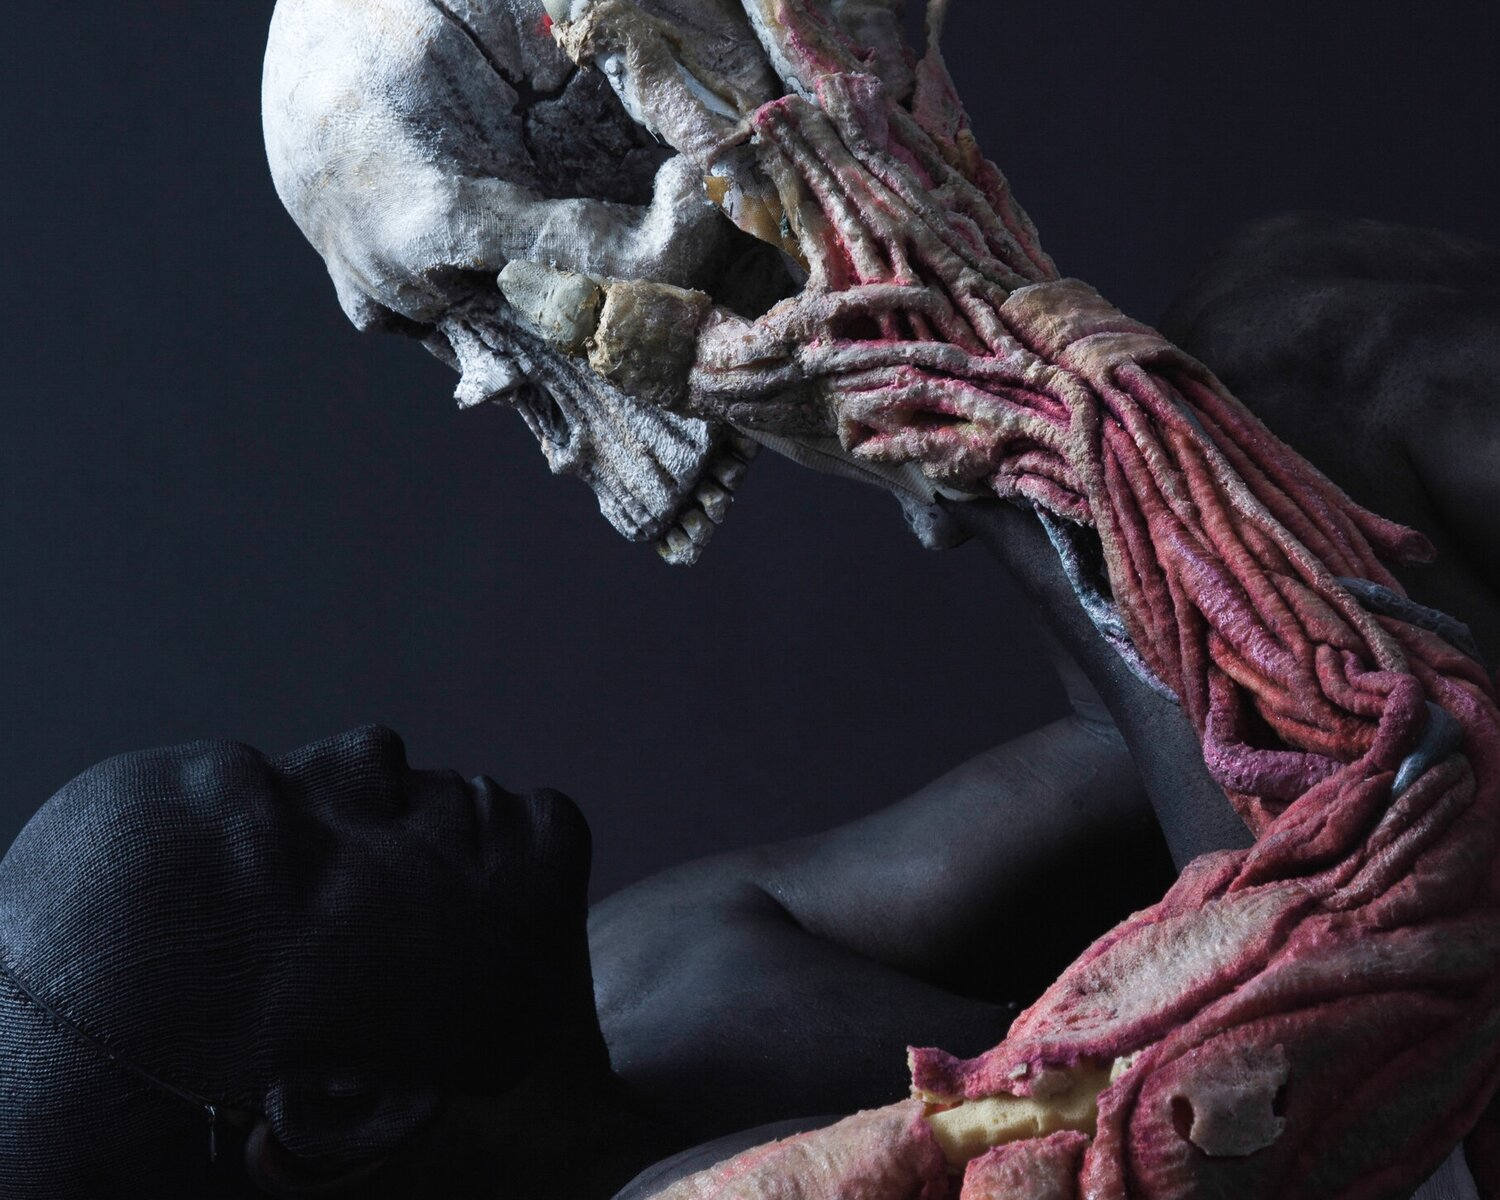 a puppeteer painted in black looks into a skull puppet that is held with a realistic arm with veins and arteries